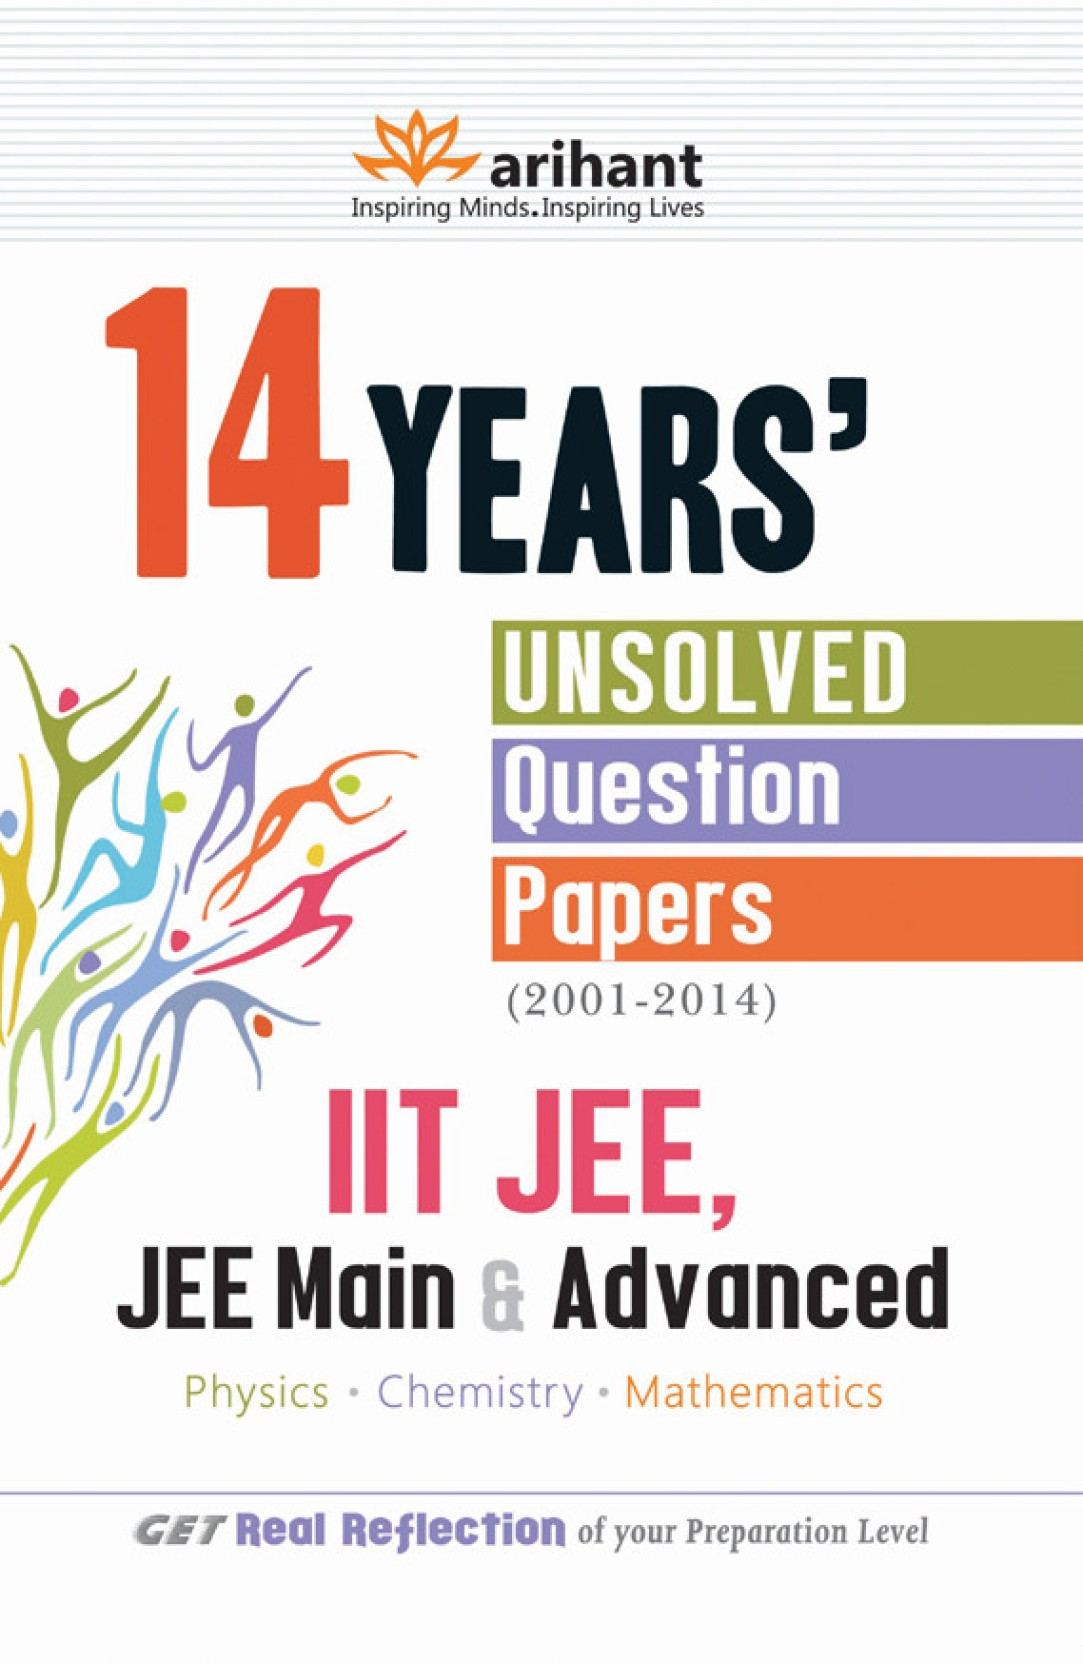 14 Years' Unsolved Question Papers (2001-2014) IIT JEE & JEE ADVANCED. Home